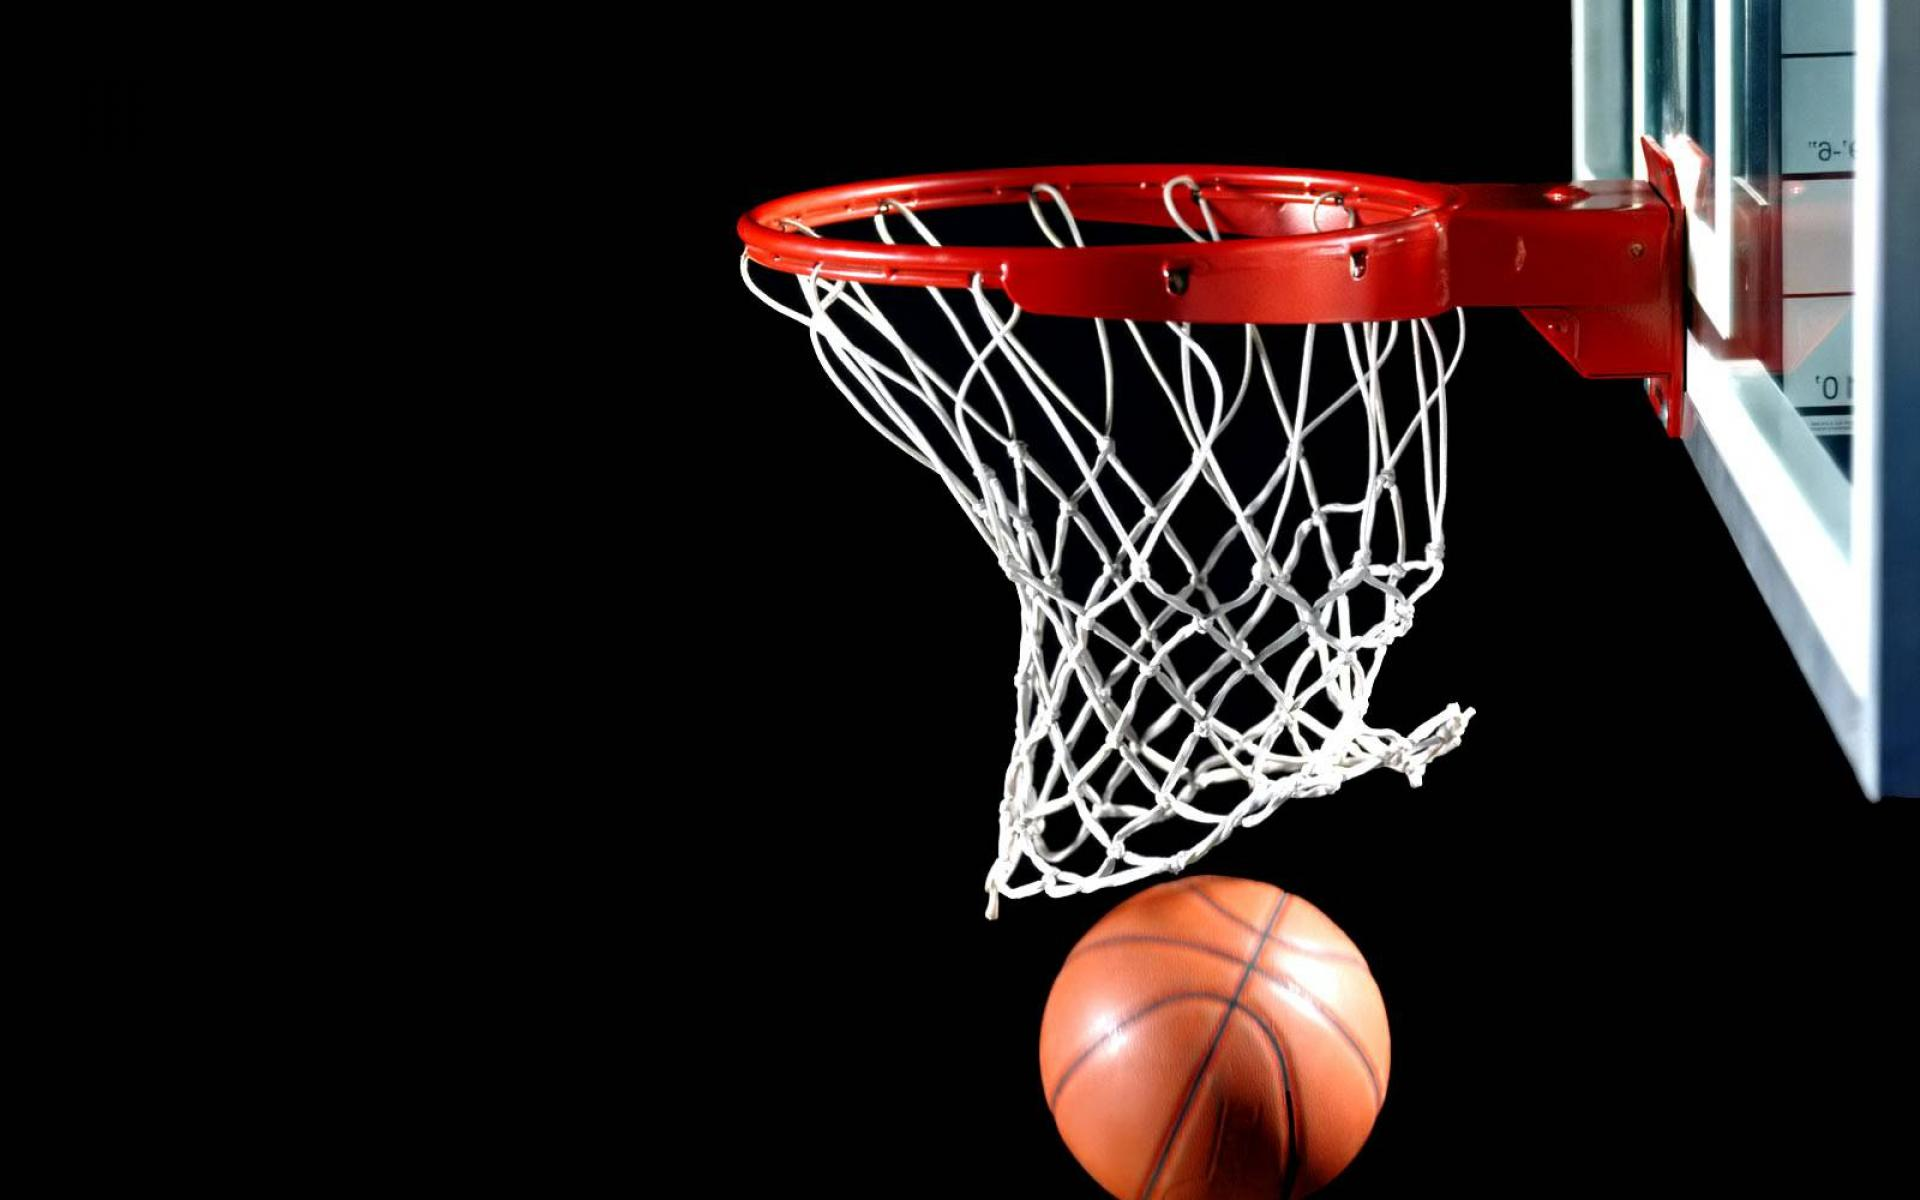 Basketball-HD-wallpaper-wpc9202786